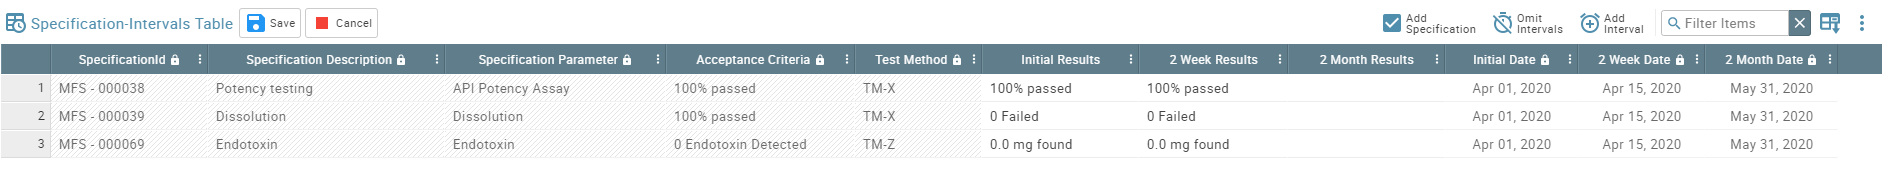 screenshot featuring a table of specification intervals